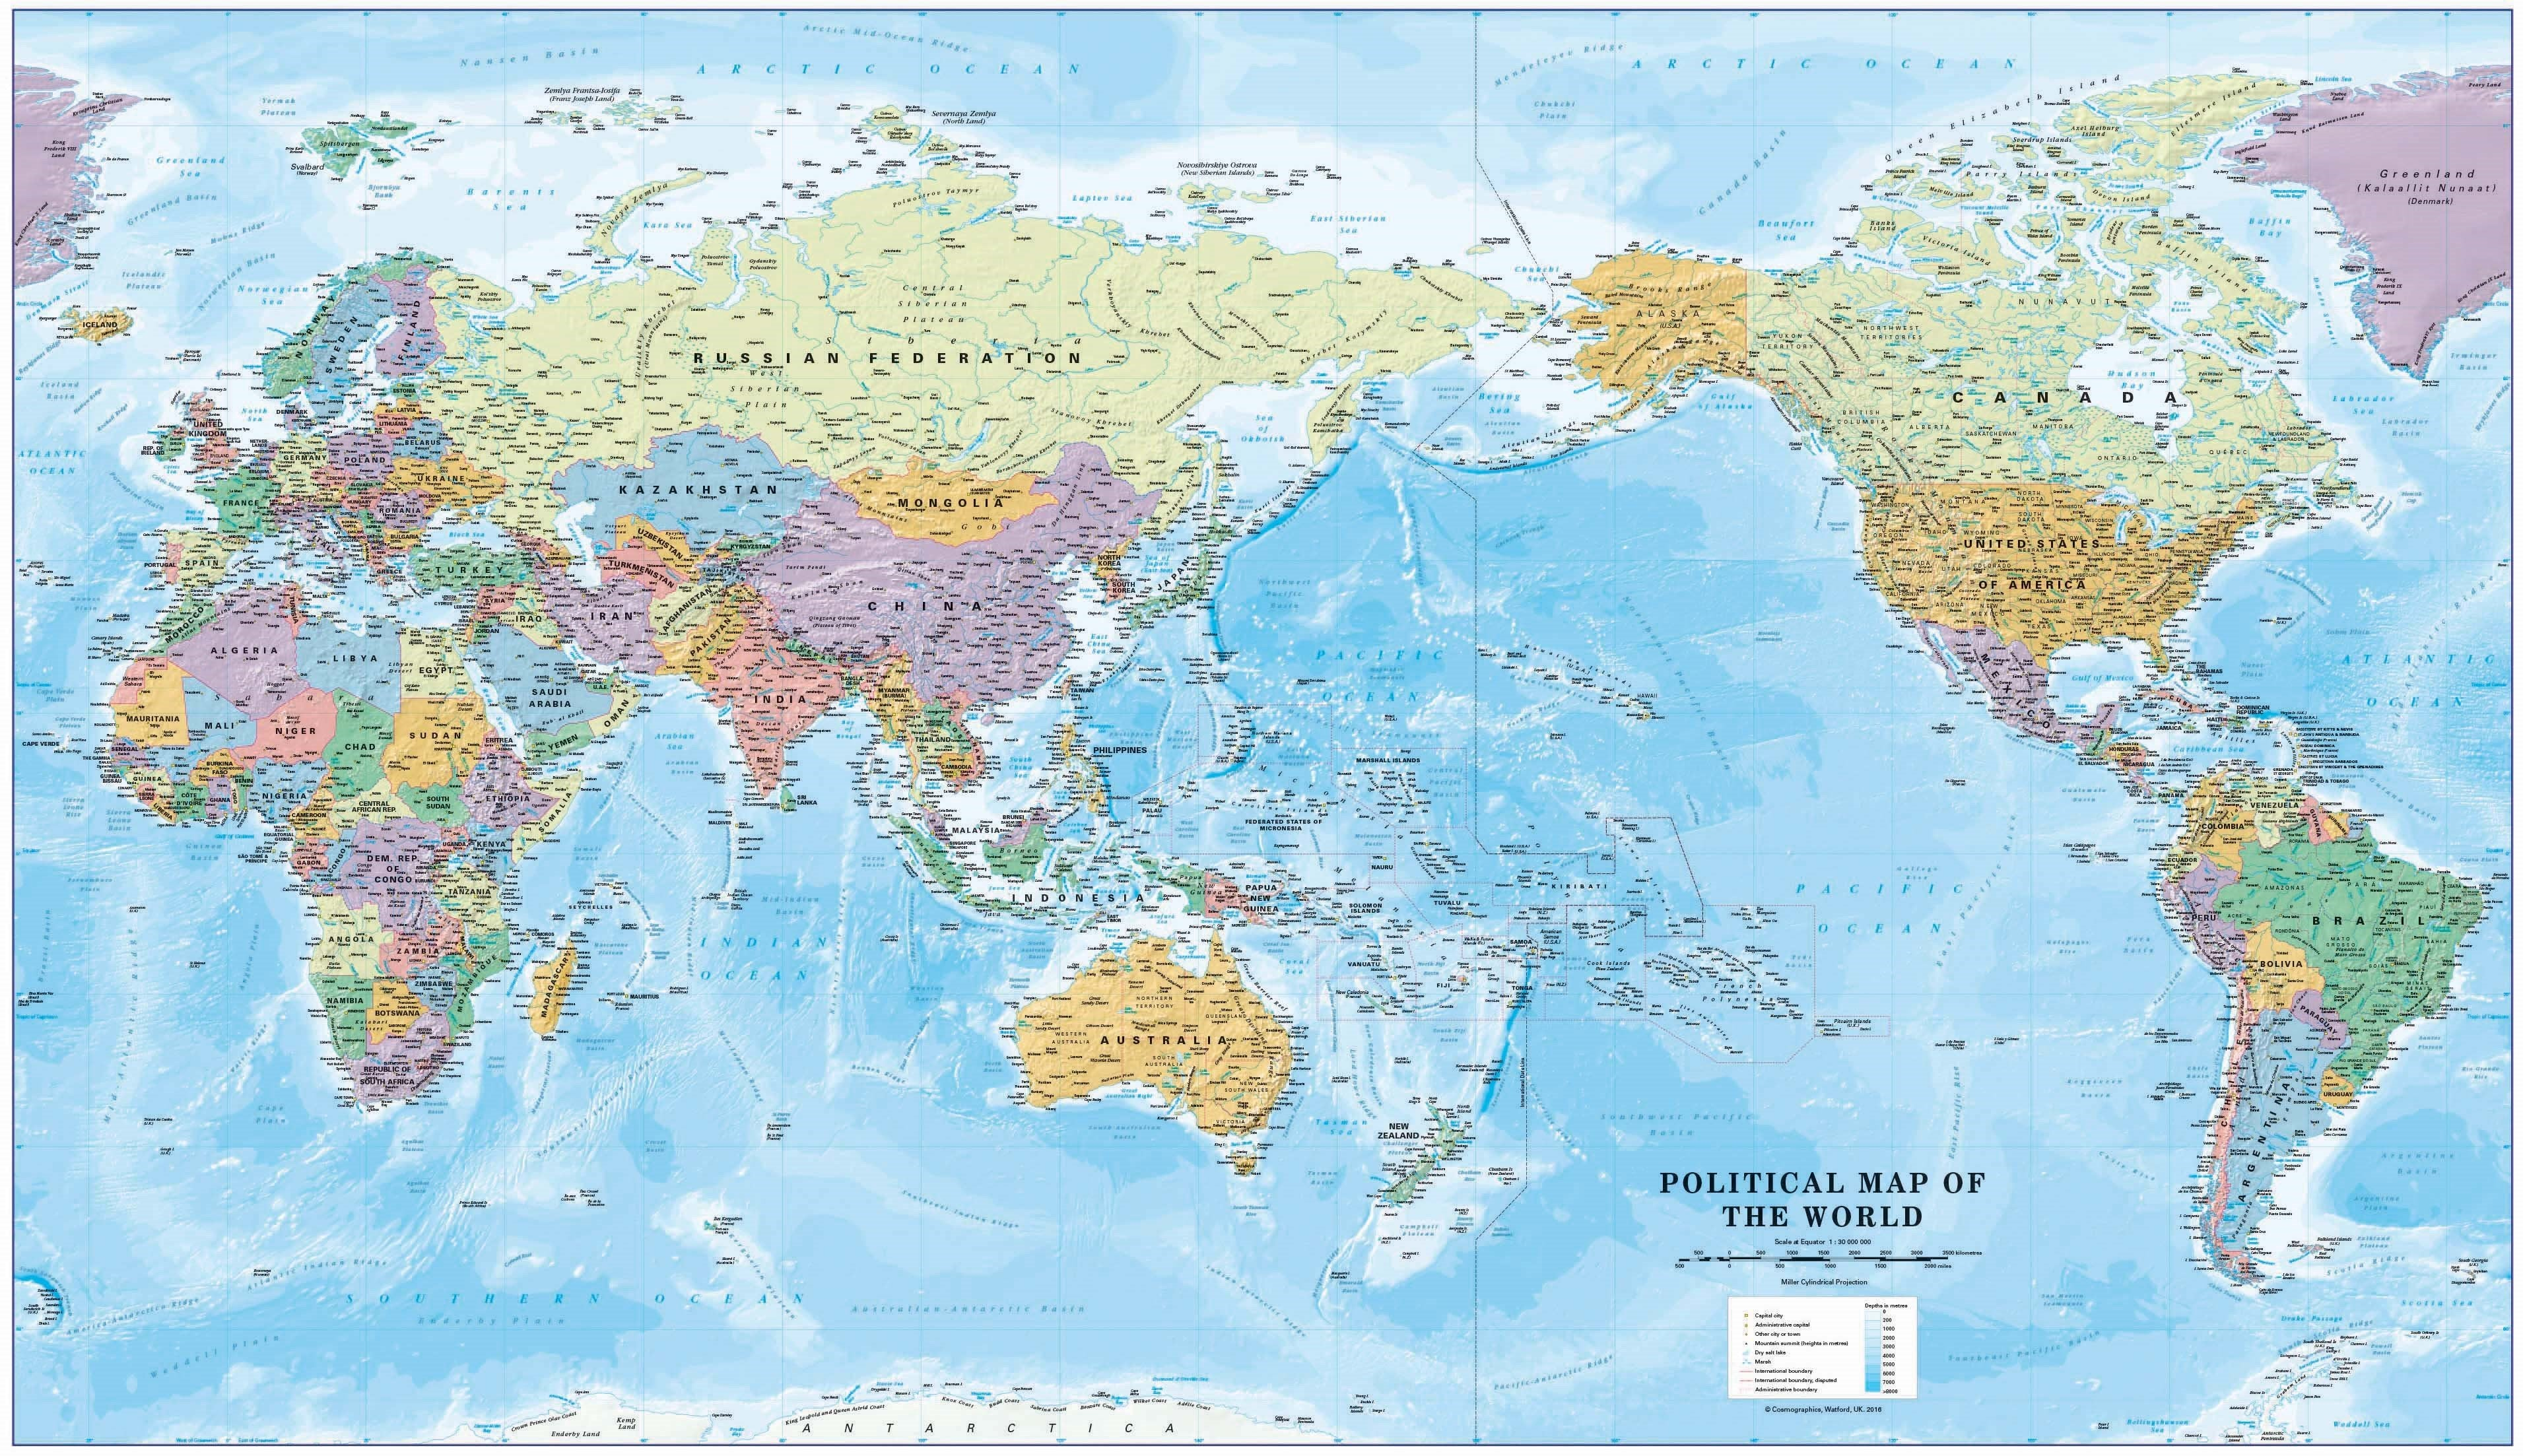 World Political Supermap on Canvas 1355x 790mm (Pacific) with FREE Map Dots